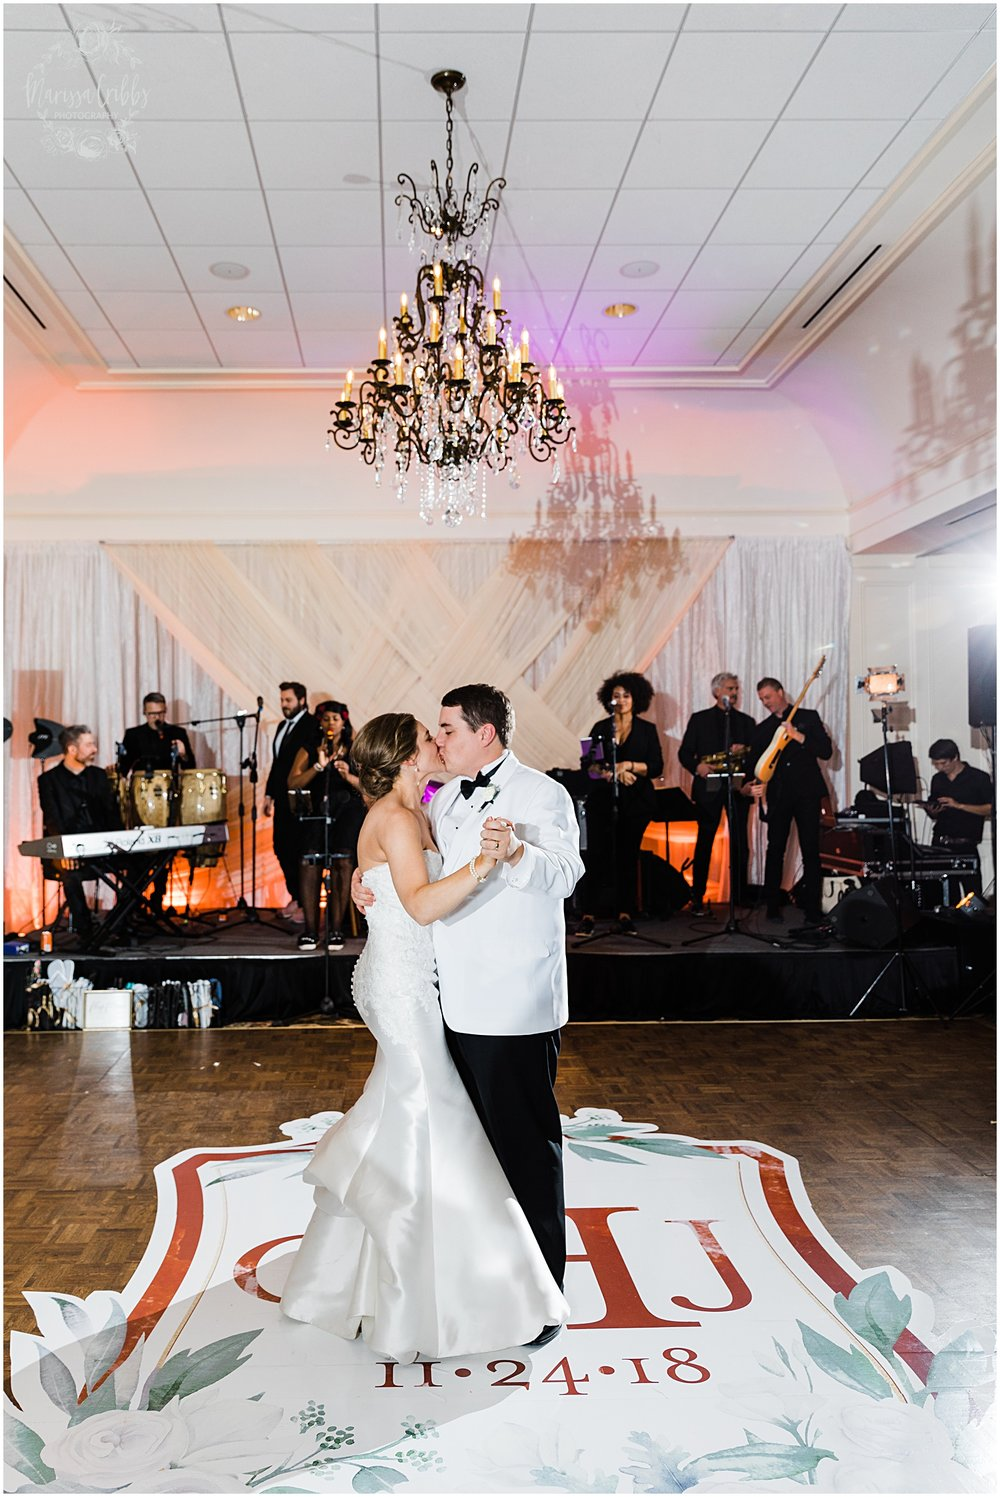 JOE & CAROLINE MARRIED | INDIAN HILLS COUNTRY CLUB | MARISSA CRIBBS PHOTOGRAPHY_7287.jpg